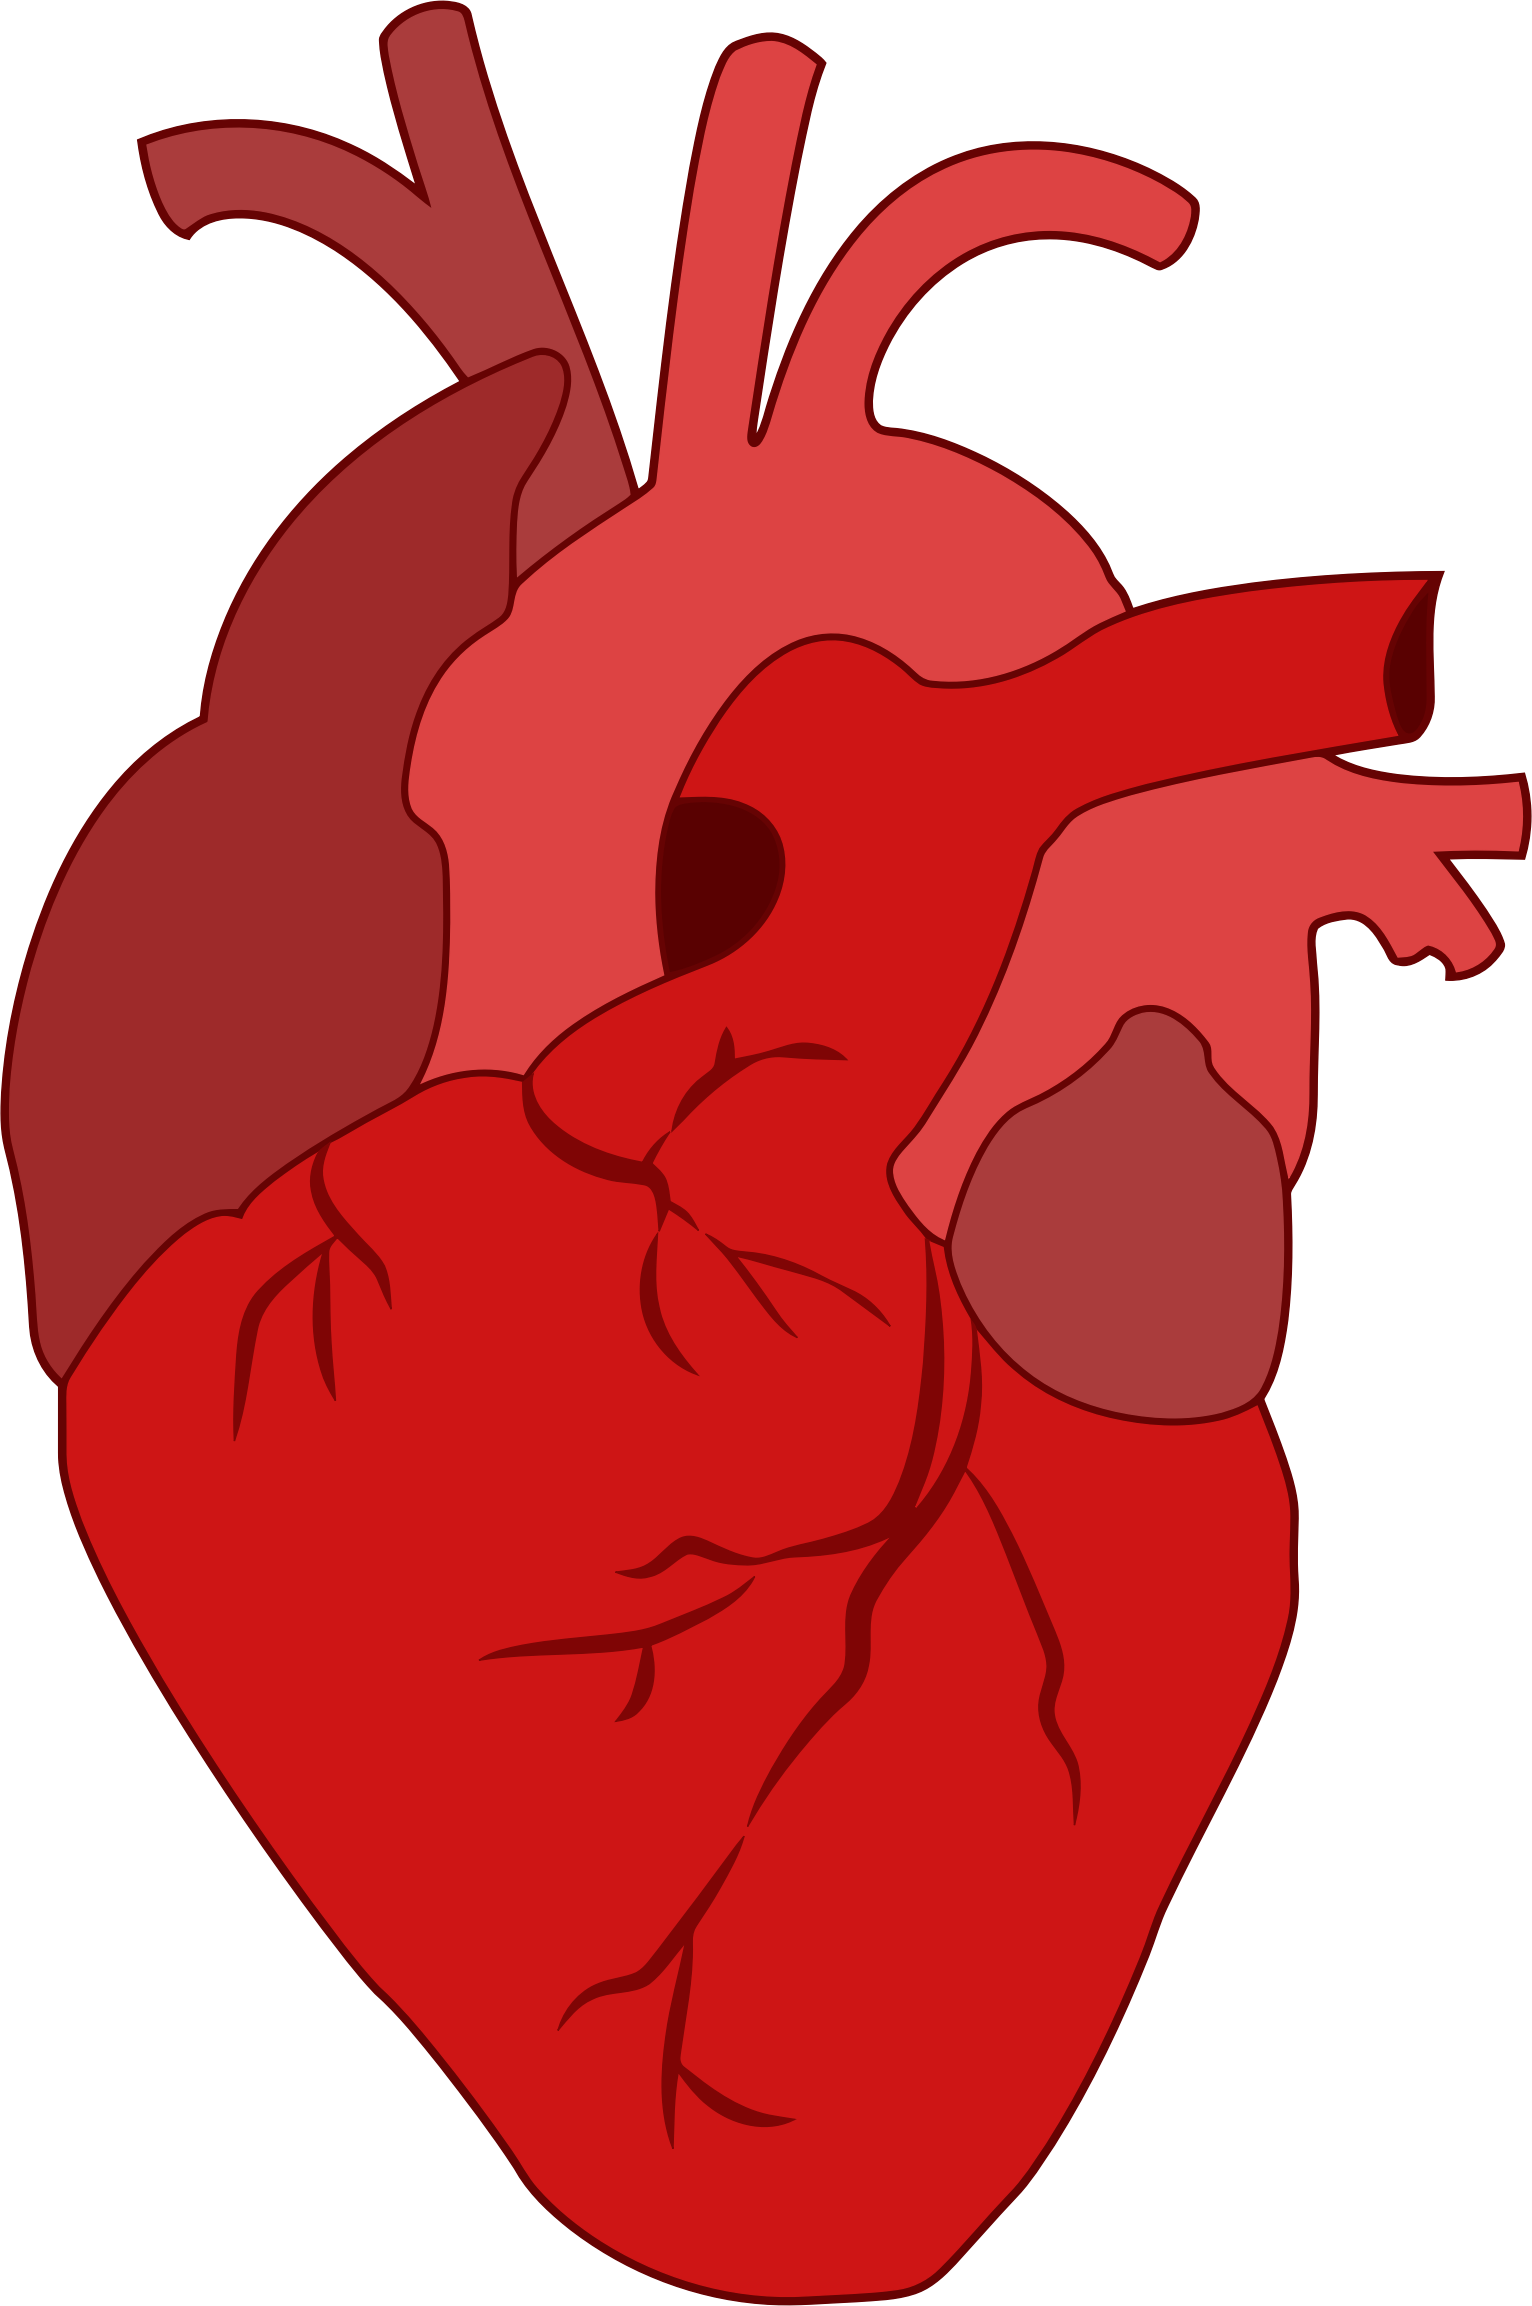 Actual heart clipart clip art black and white library 28+ Collection of Actual Heart Clipart | High quality, free cliparts ... clip art black and white library